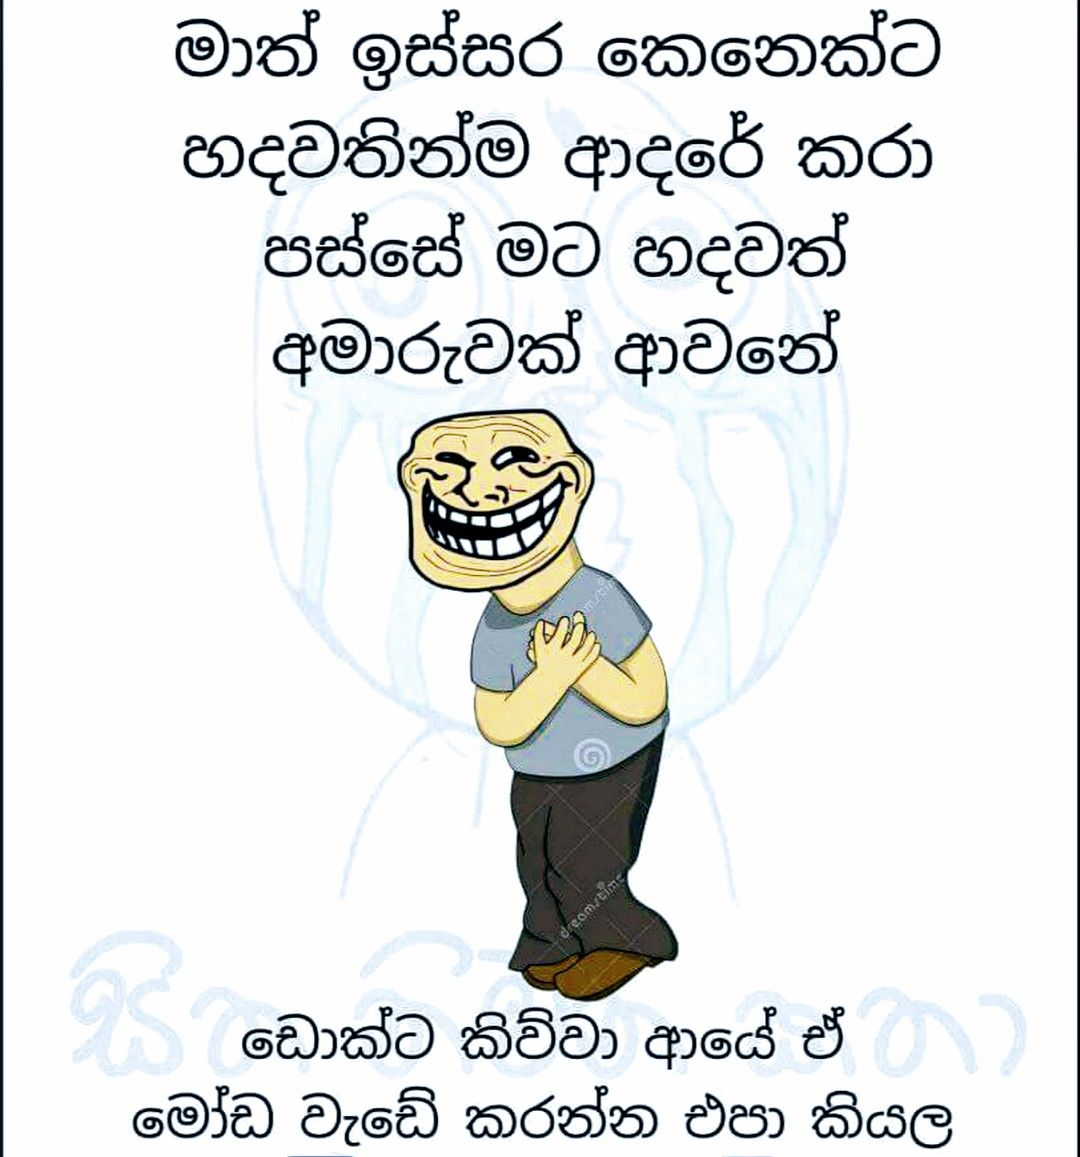 Pin By Fathi Nuuh On Lankan Memes Jokes Quotes Friends Quotes Funny Jokes